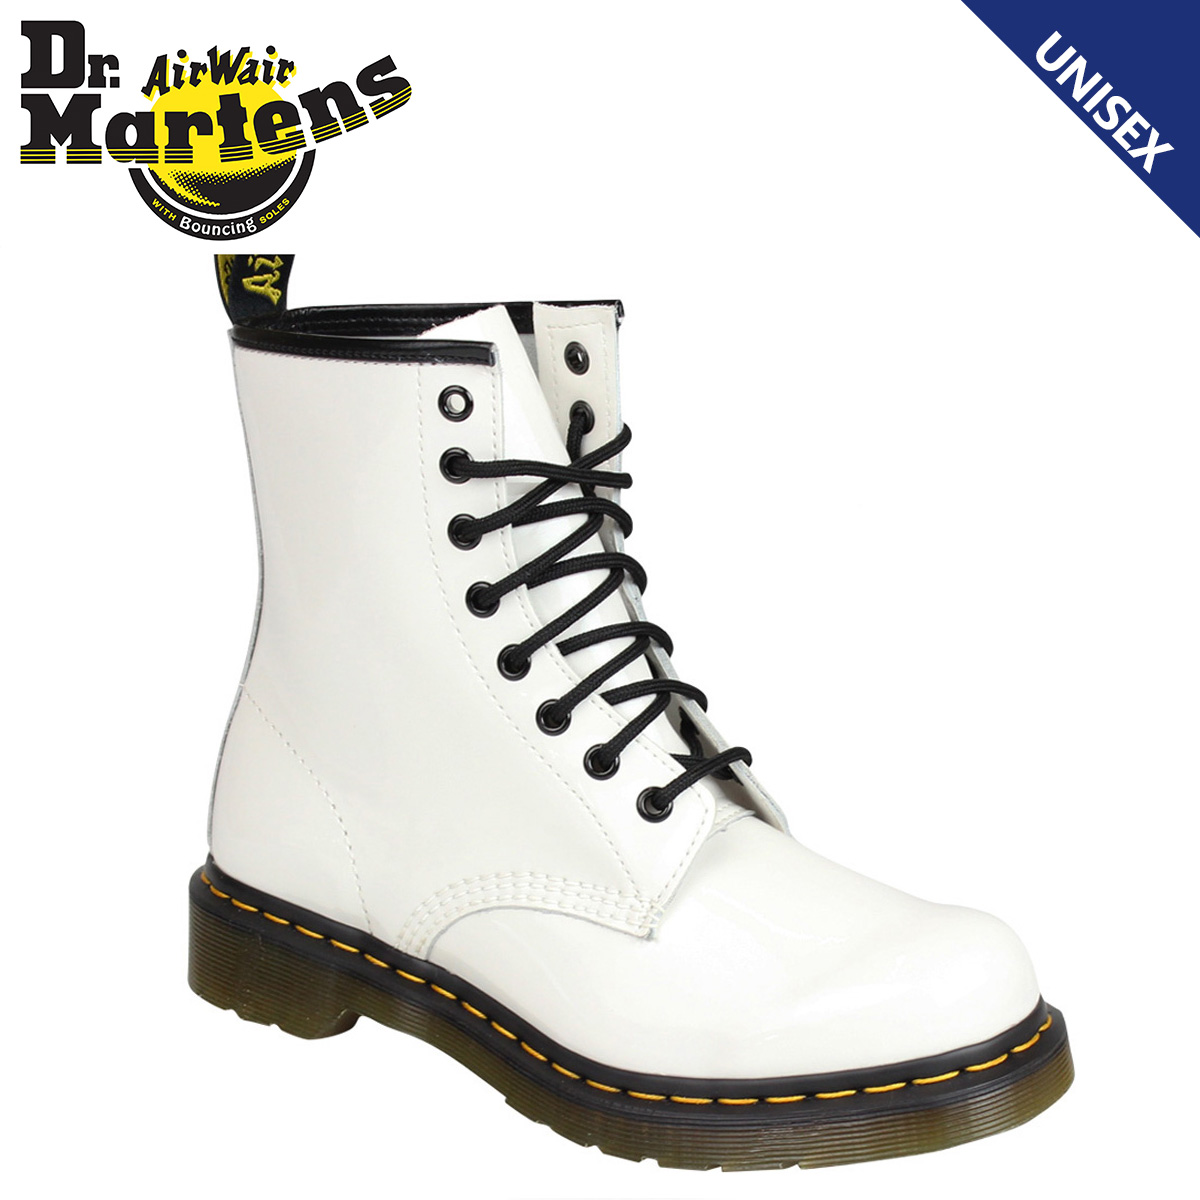 Details about Dr.Martens 1460 White Patent Leather Womens